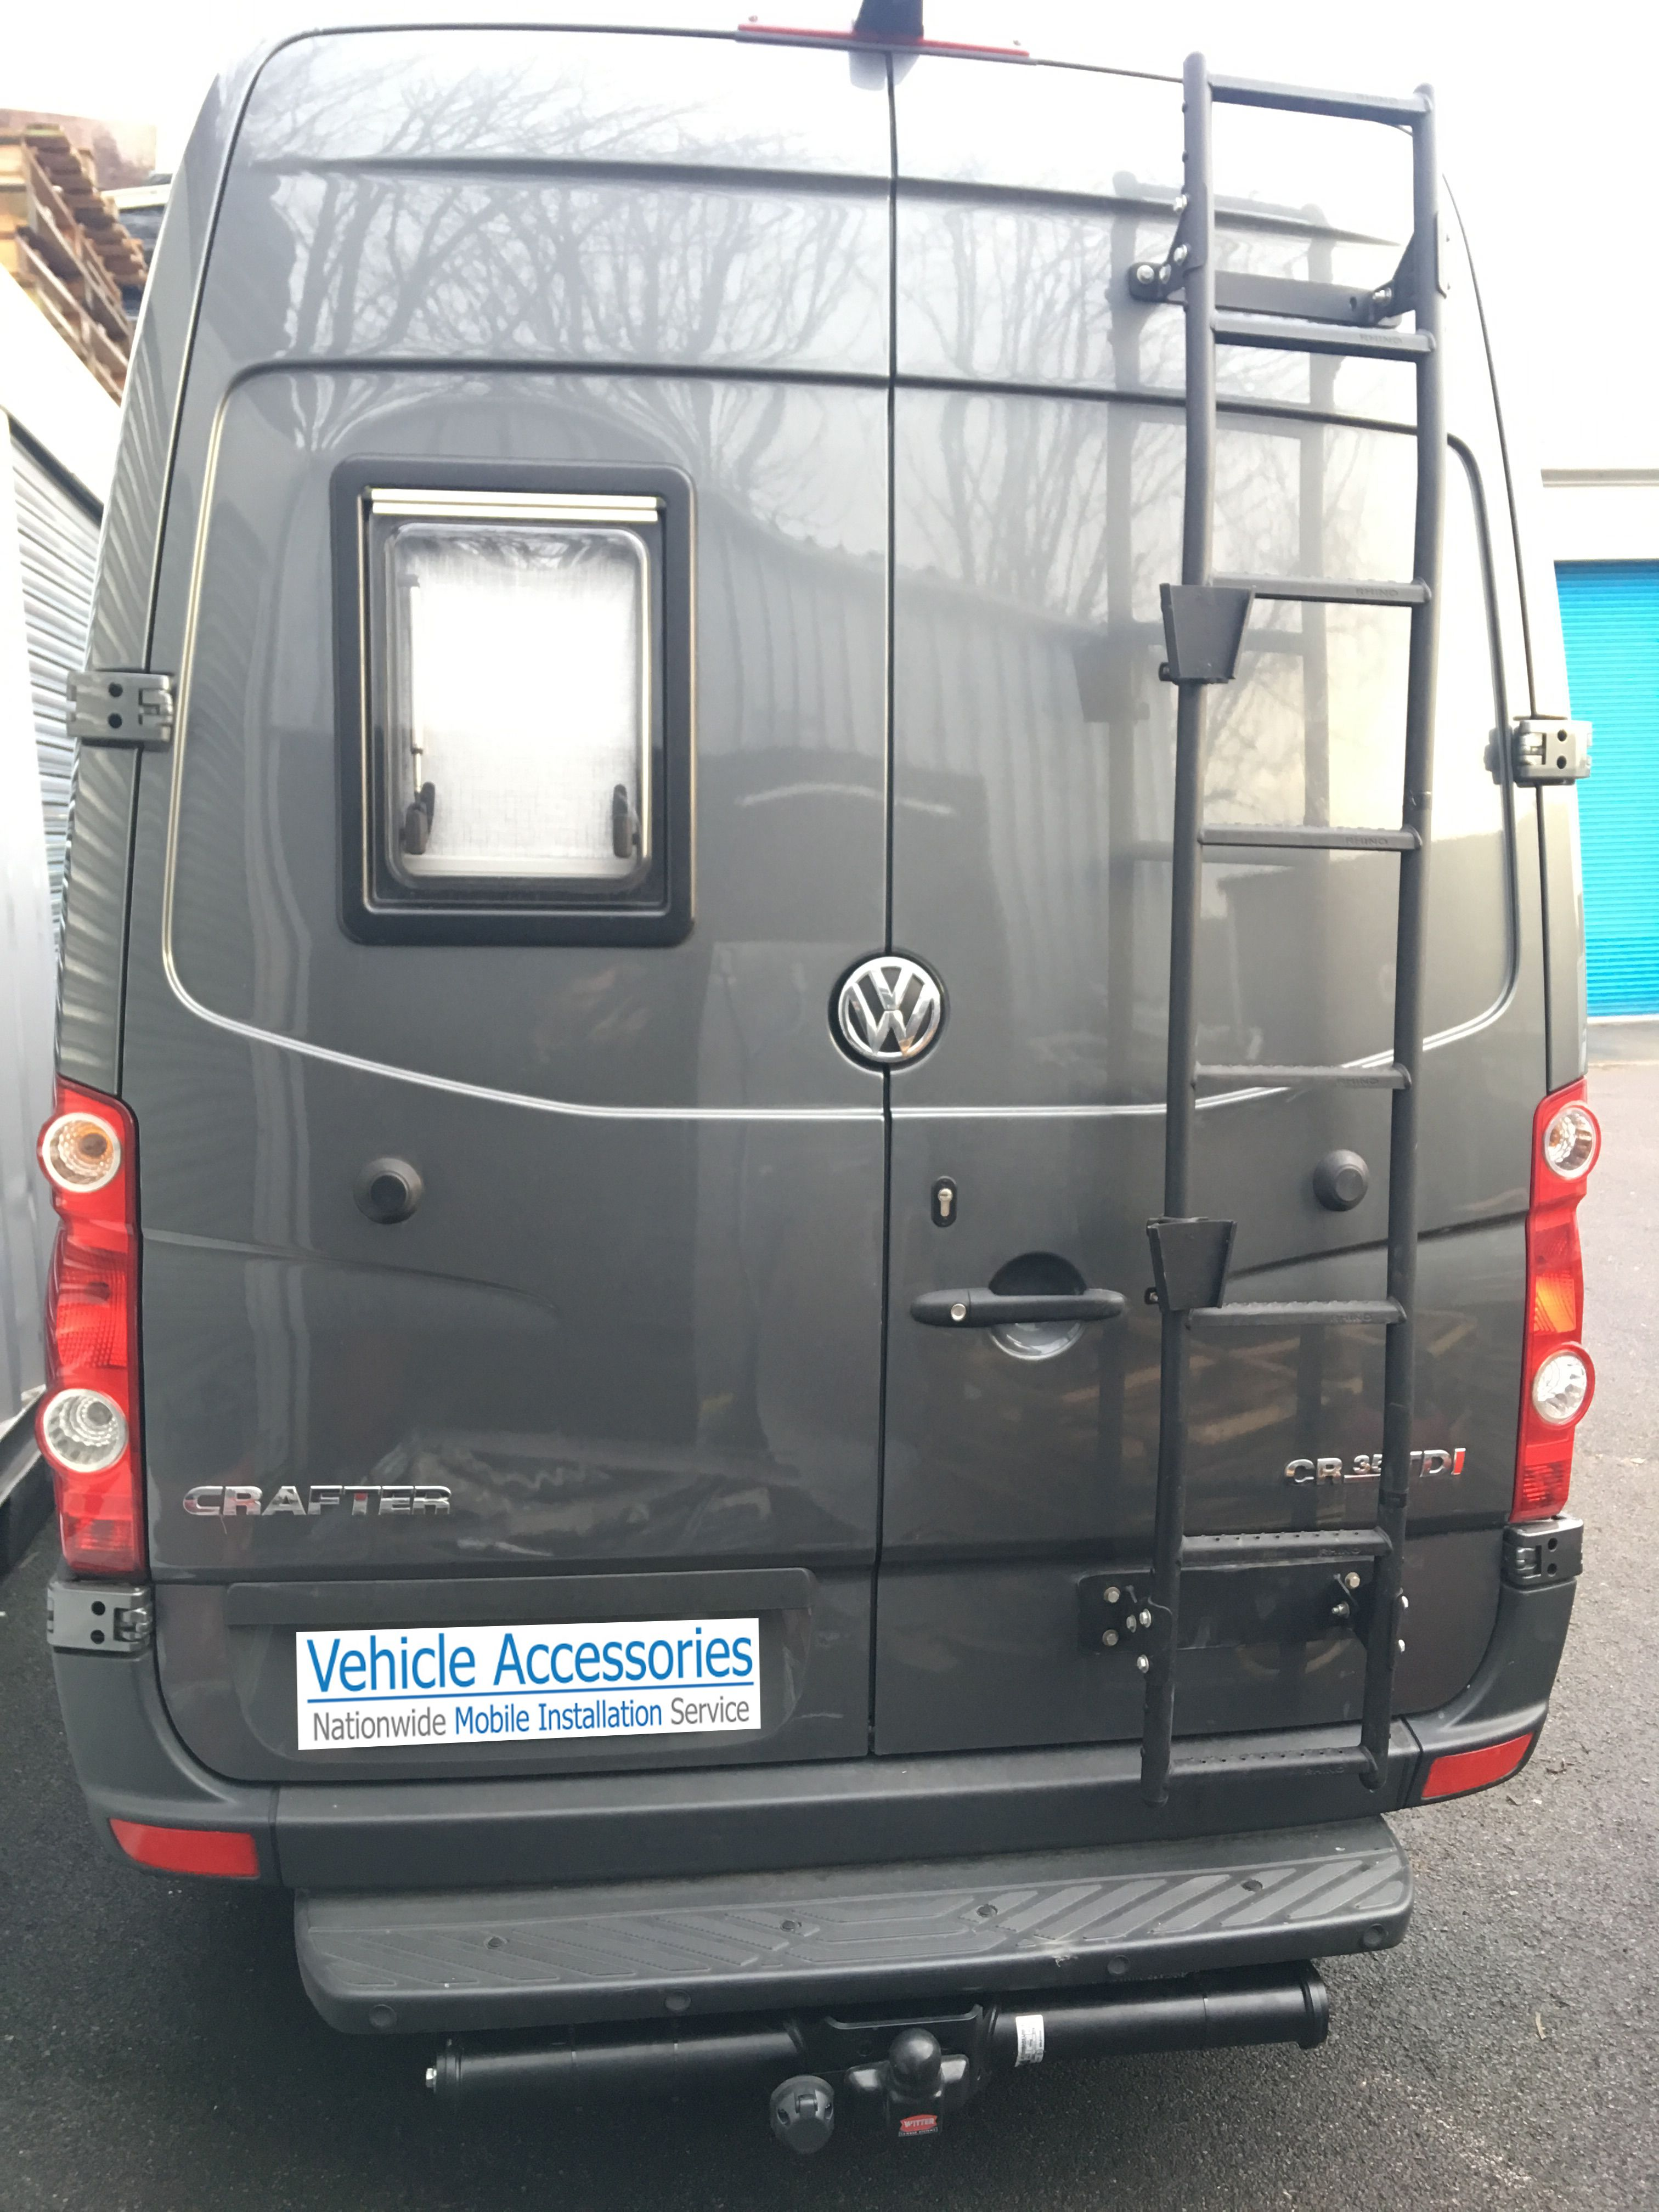 Vw Crafter Fitted With Deaadlocks Towbar Safety Step And Tracker